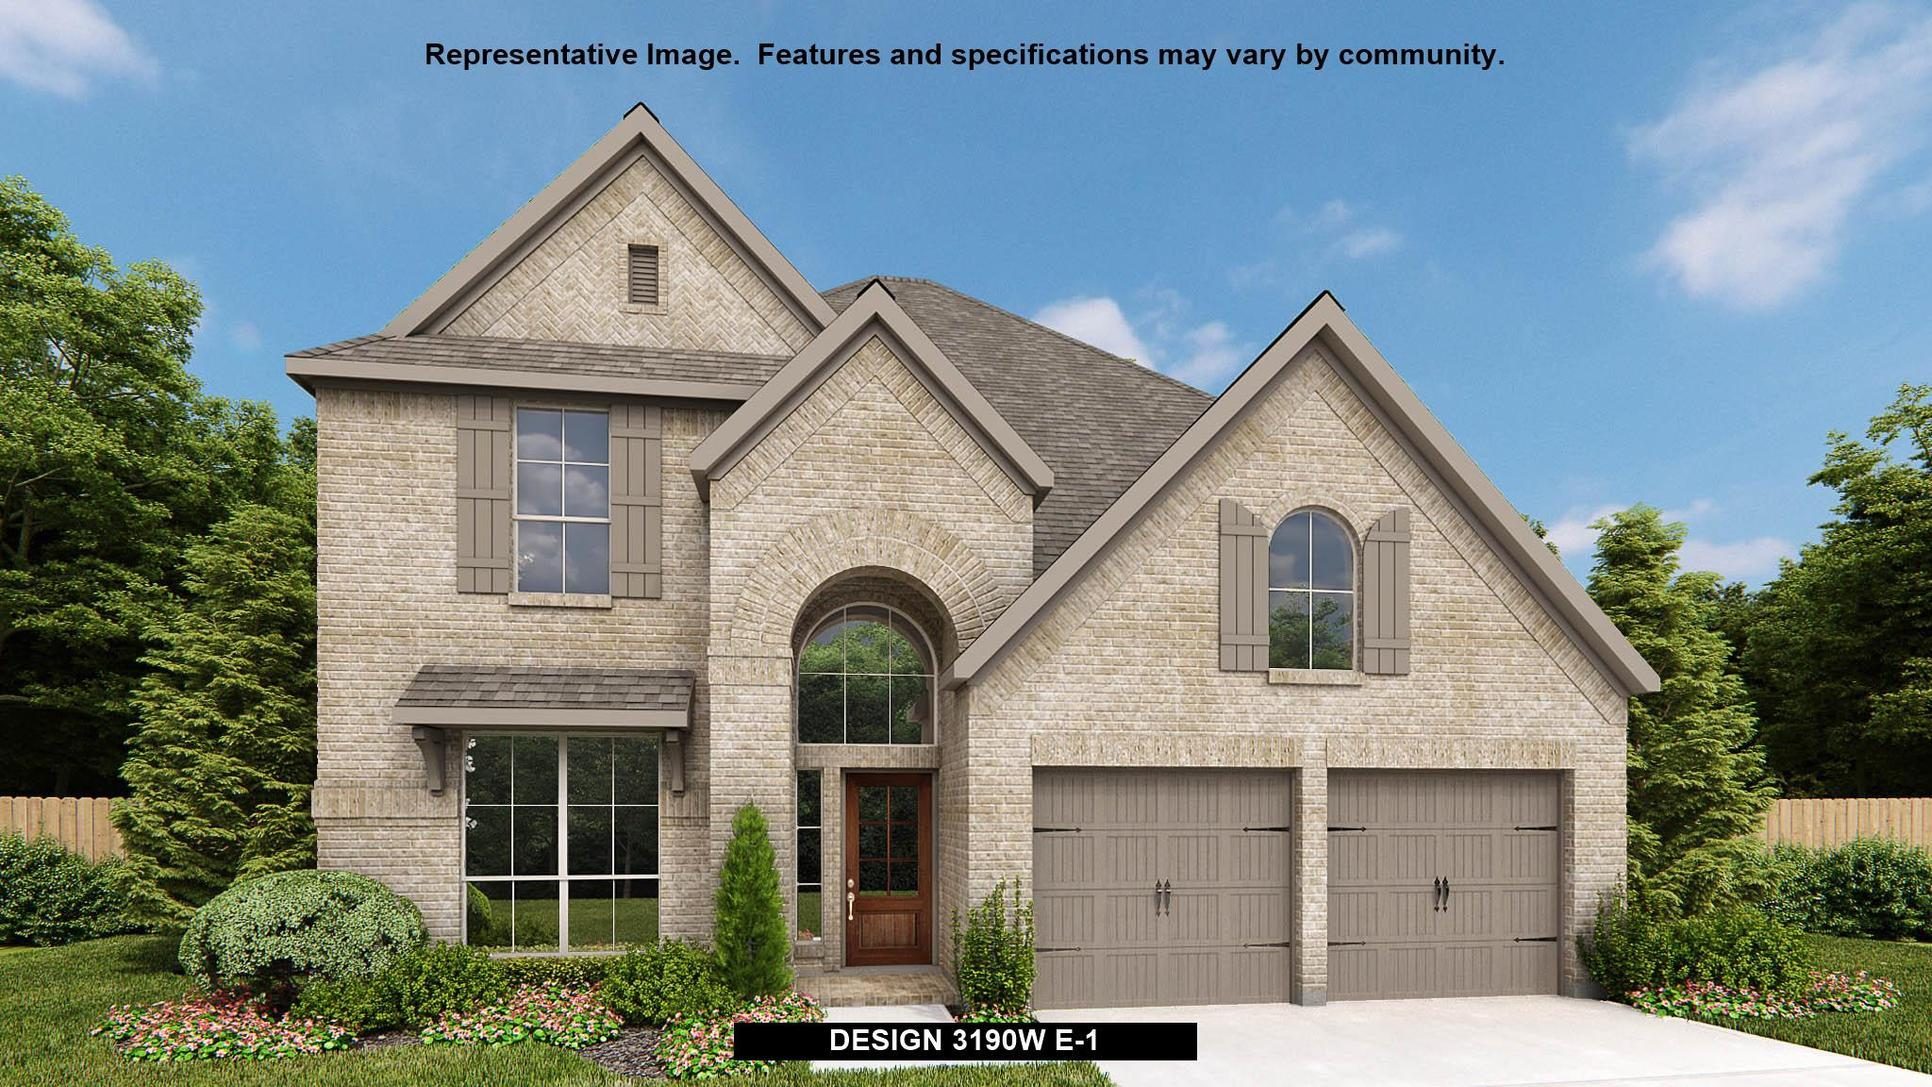 Plan 3190W:Representative photo.  Features and specifications may vary by community.